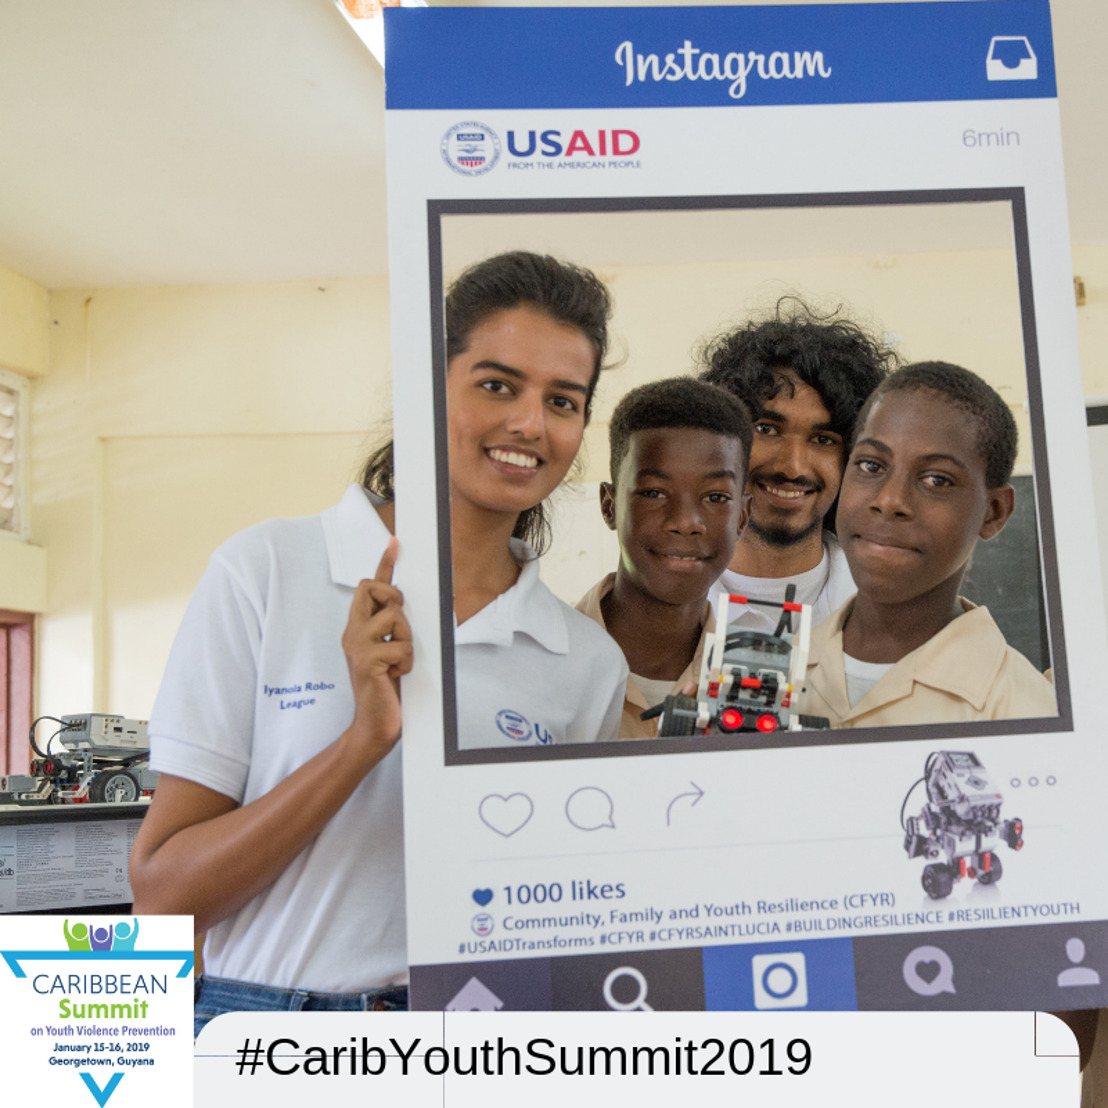 [MEDIA ALERT]: Youth Activists are Key Focus of Caribbean Violence Prevention Summit